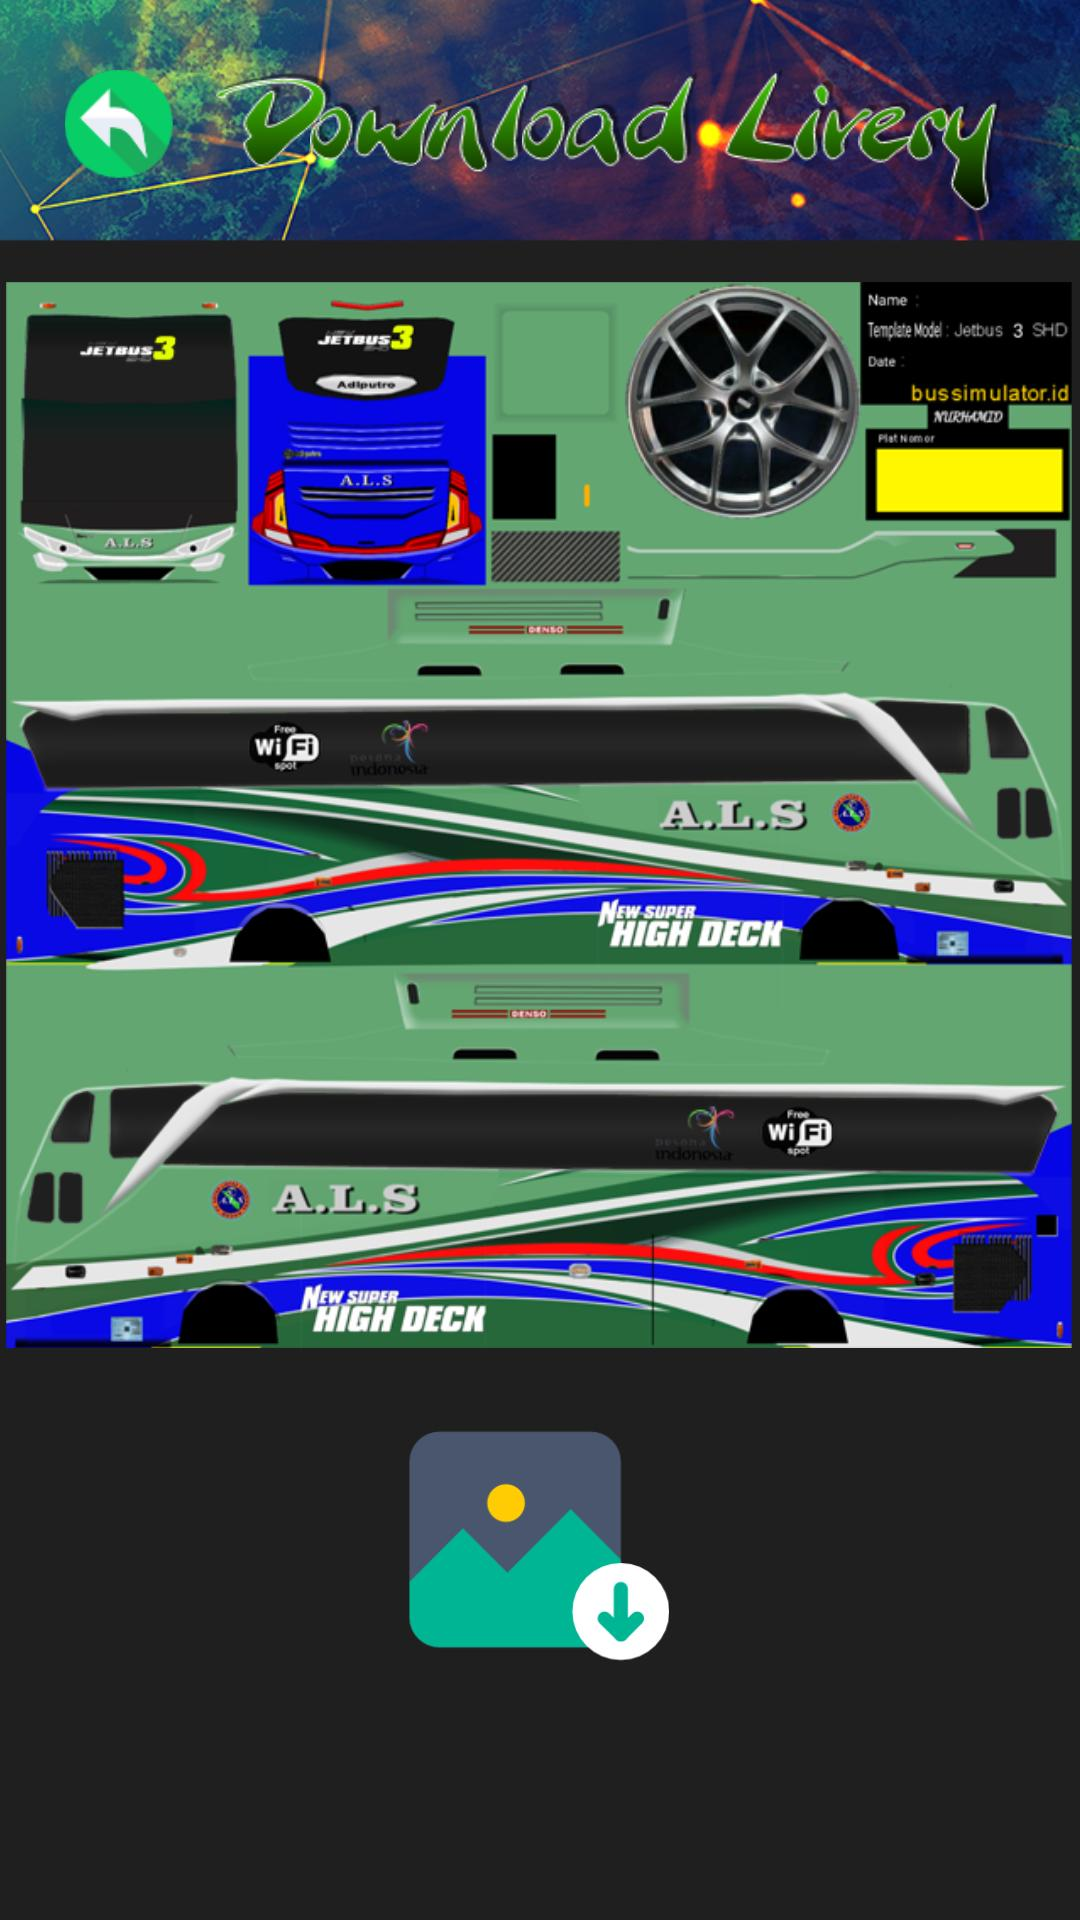 Livery Bus Als Jetbus 3 For Android Apk Download